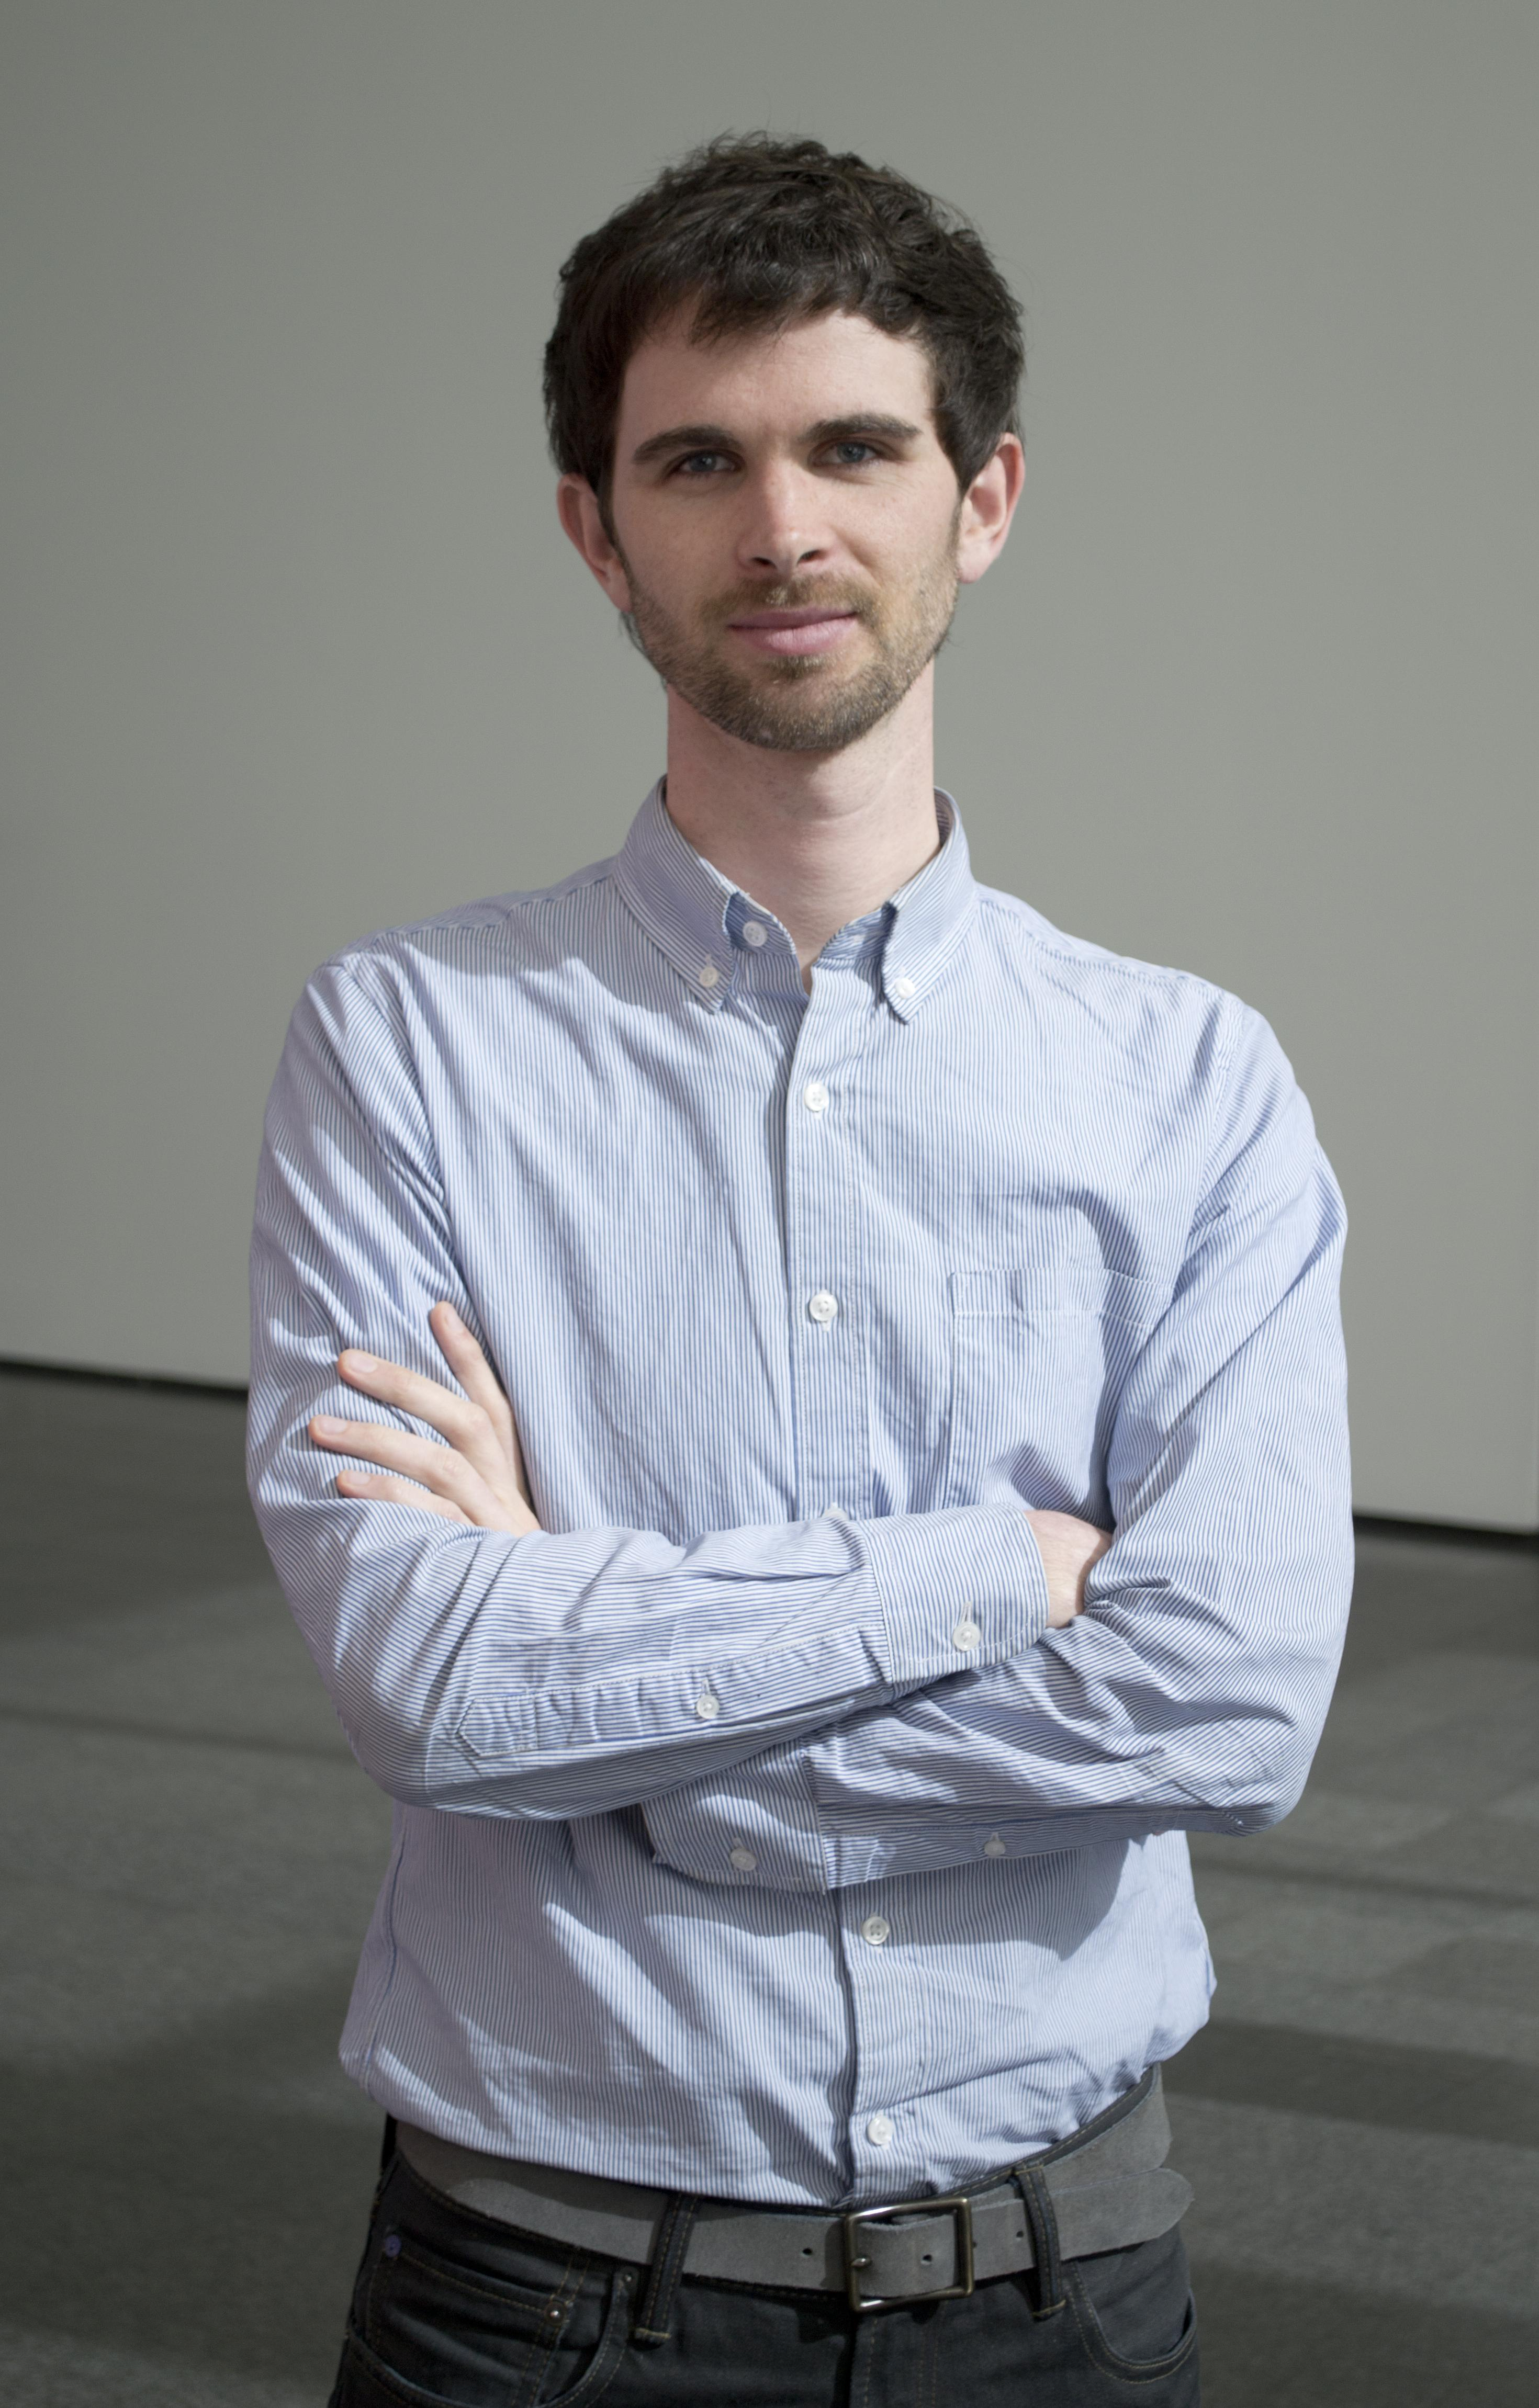 Portrait of MCA curatorial assistant Karsten Lund folding his arms